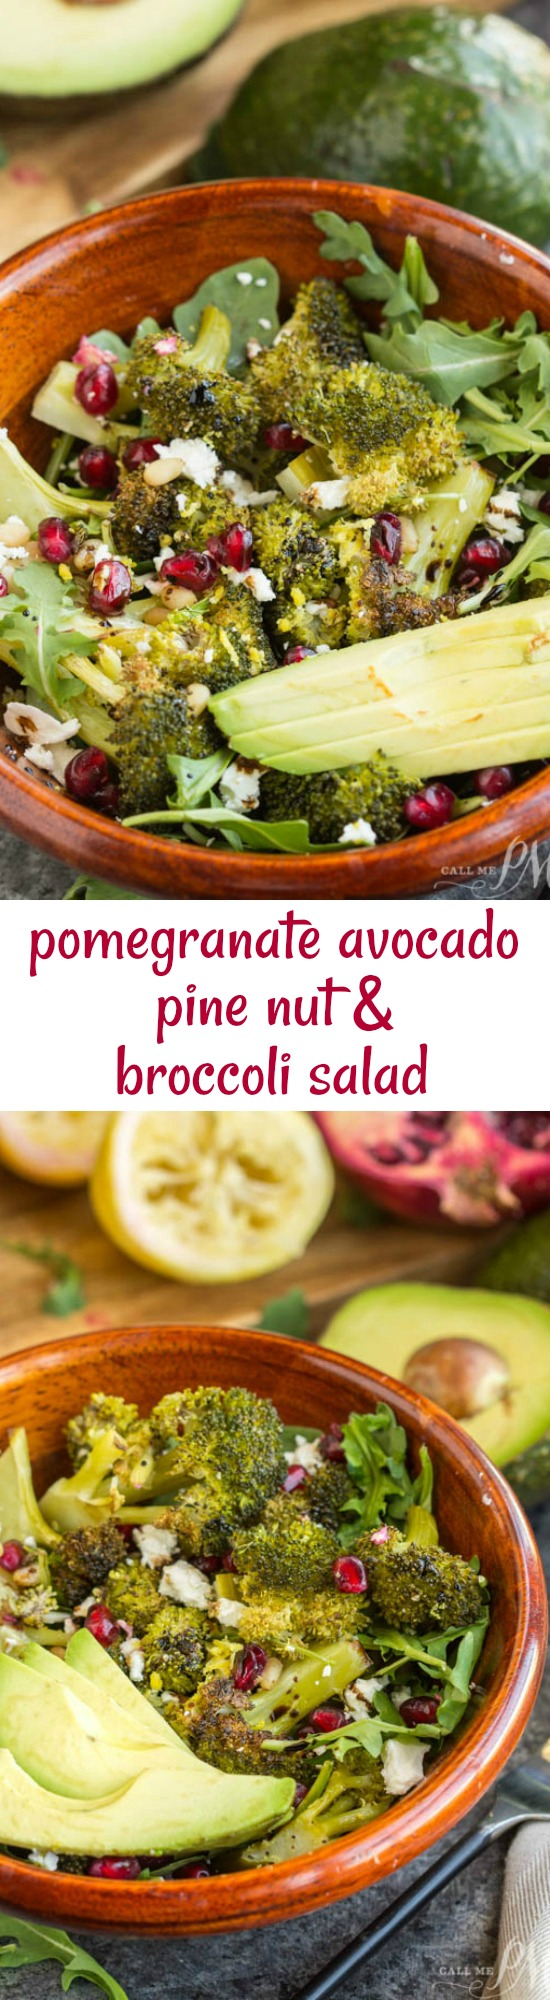 Pomegranate Avocado and Pine Nut Roasted Broccoli Salad packs a flavorful punch. One bite and this salad will be your new favorite.